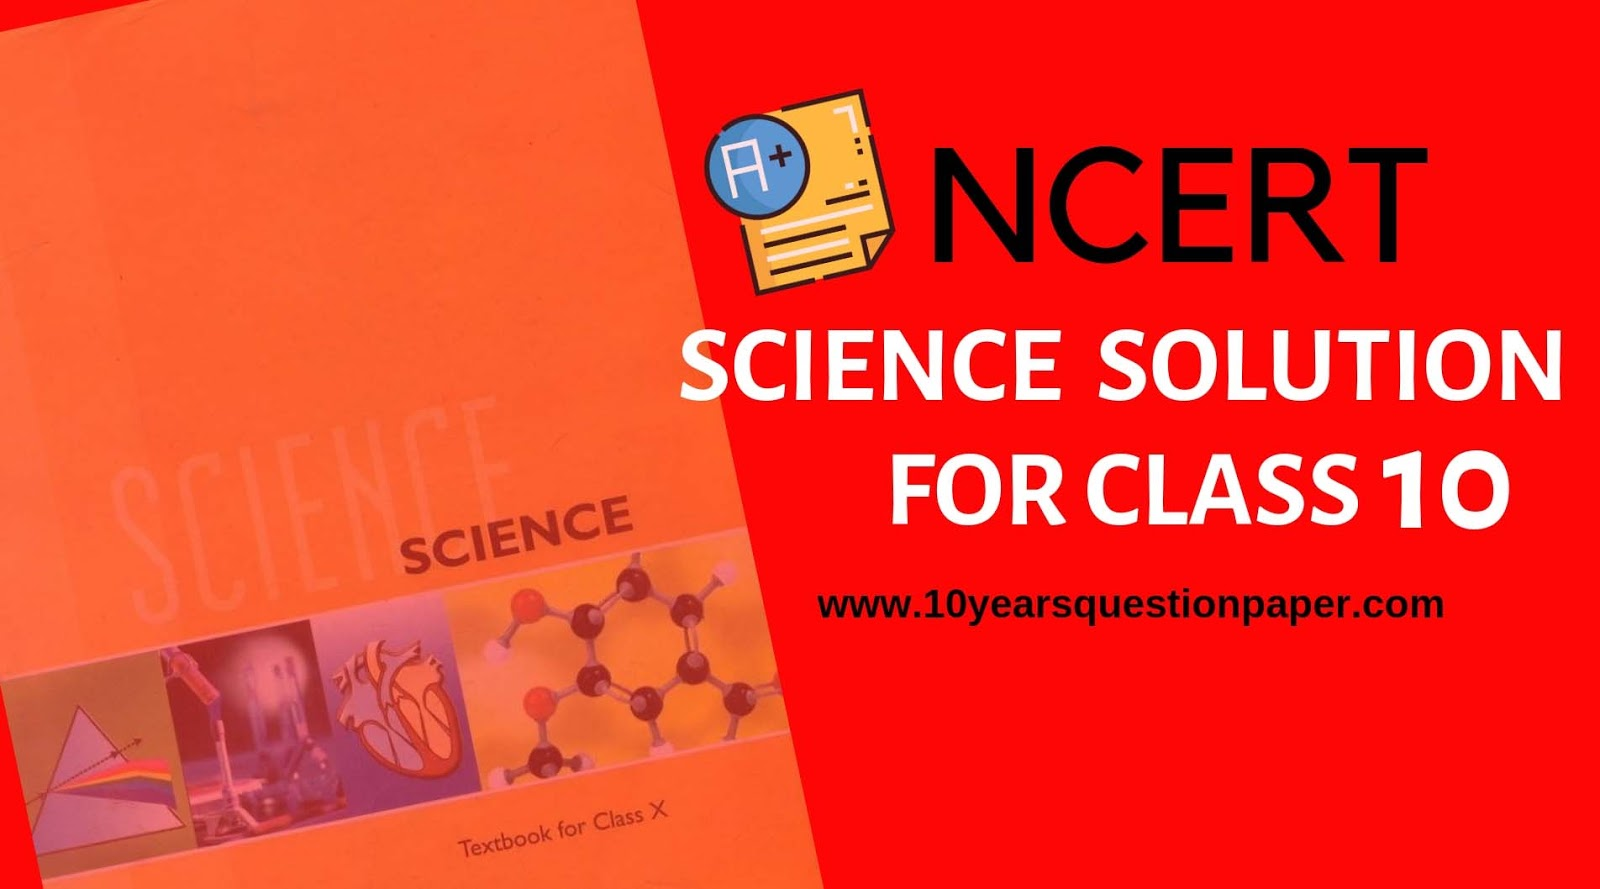 NCERT Science Solution for class 10: Download PDF